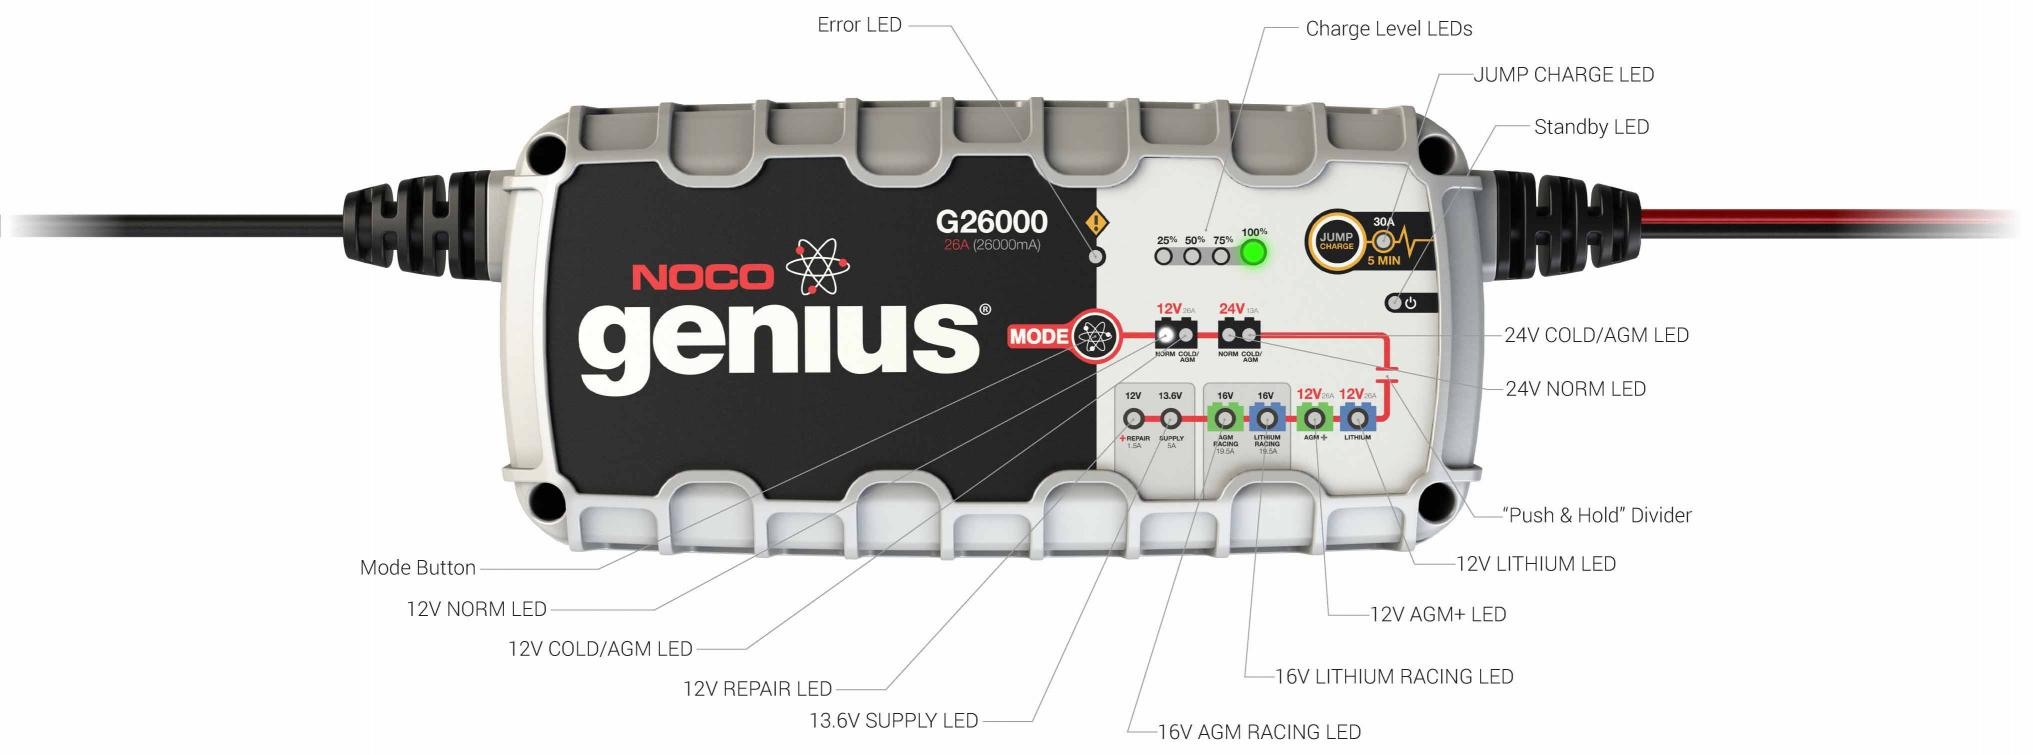 Noco Genius G26000 26 Amp Ultrasafe Battery Charger Wiring Diagram